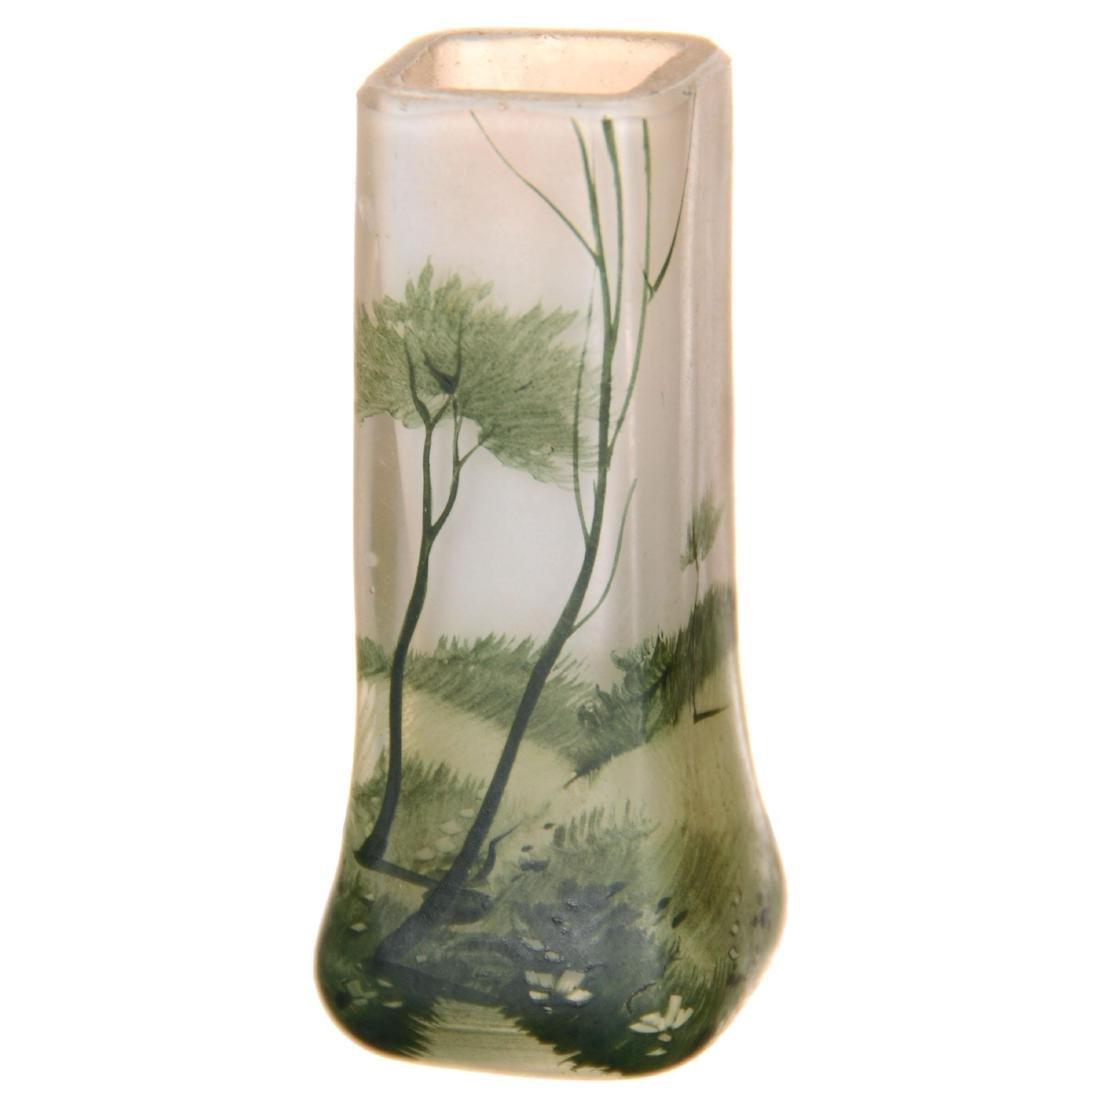 Scenic Art Glass Miniature Vase